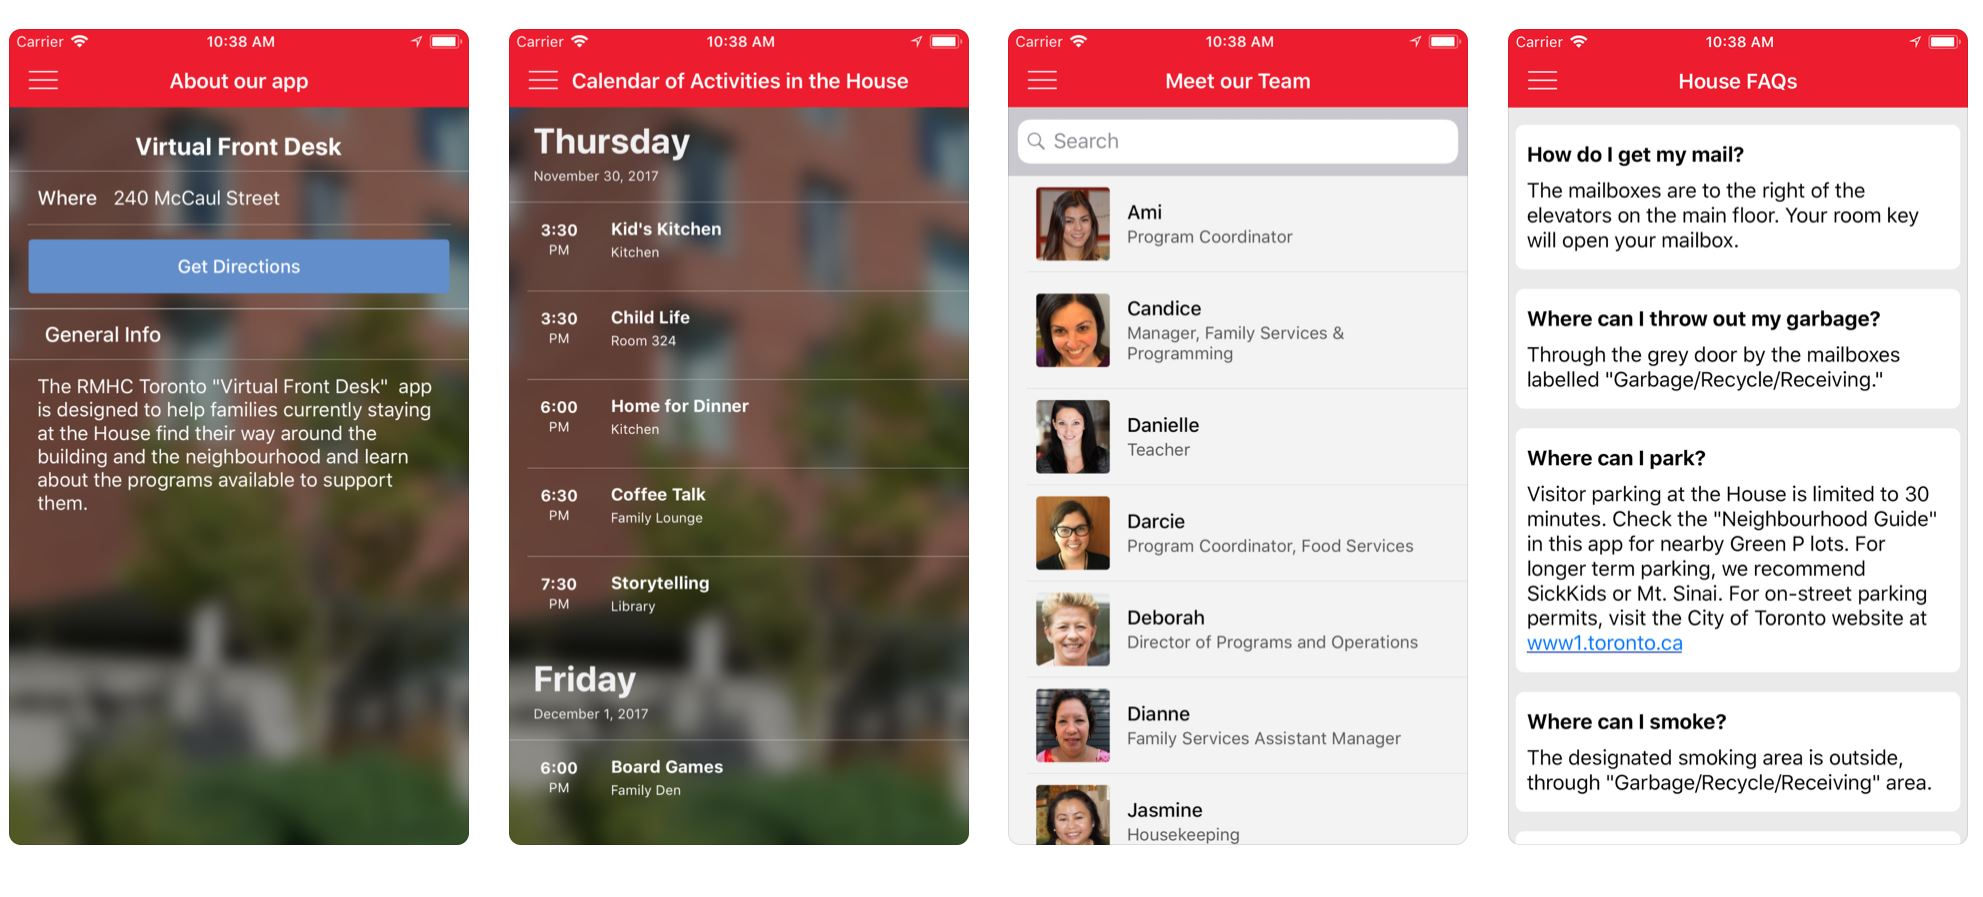 RMHC Toronto - Virtual Front Desk - iOS app